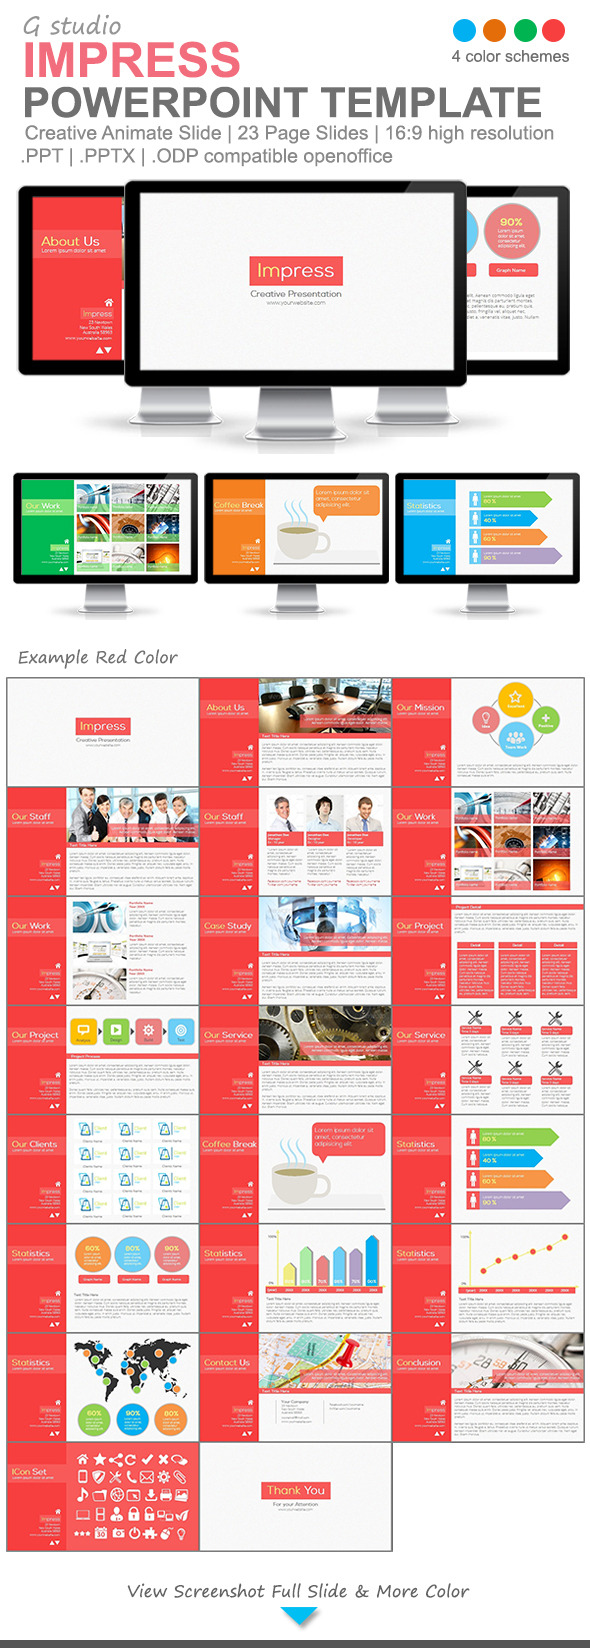 Gstudio Impress Powerpoint Template - PowerPoint Templates Presentation Templates